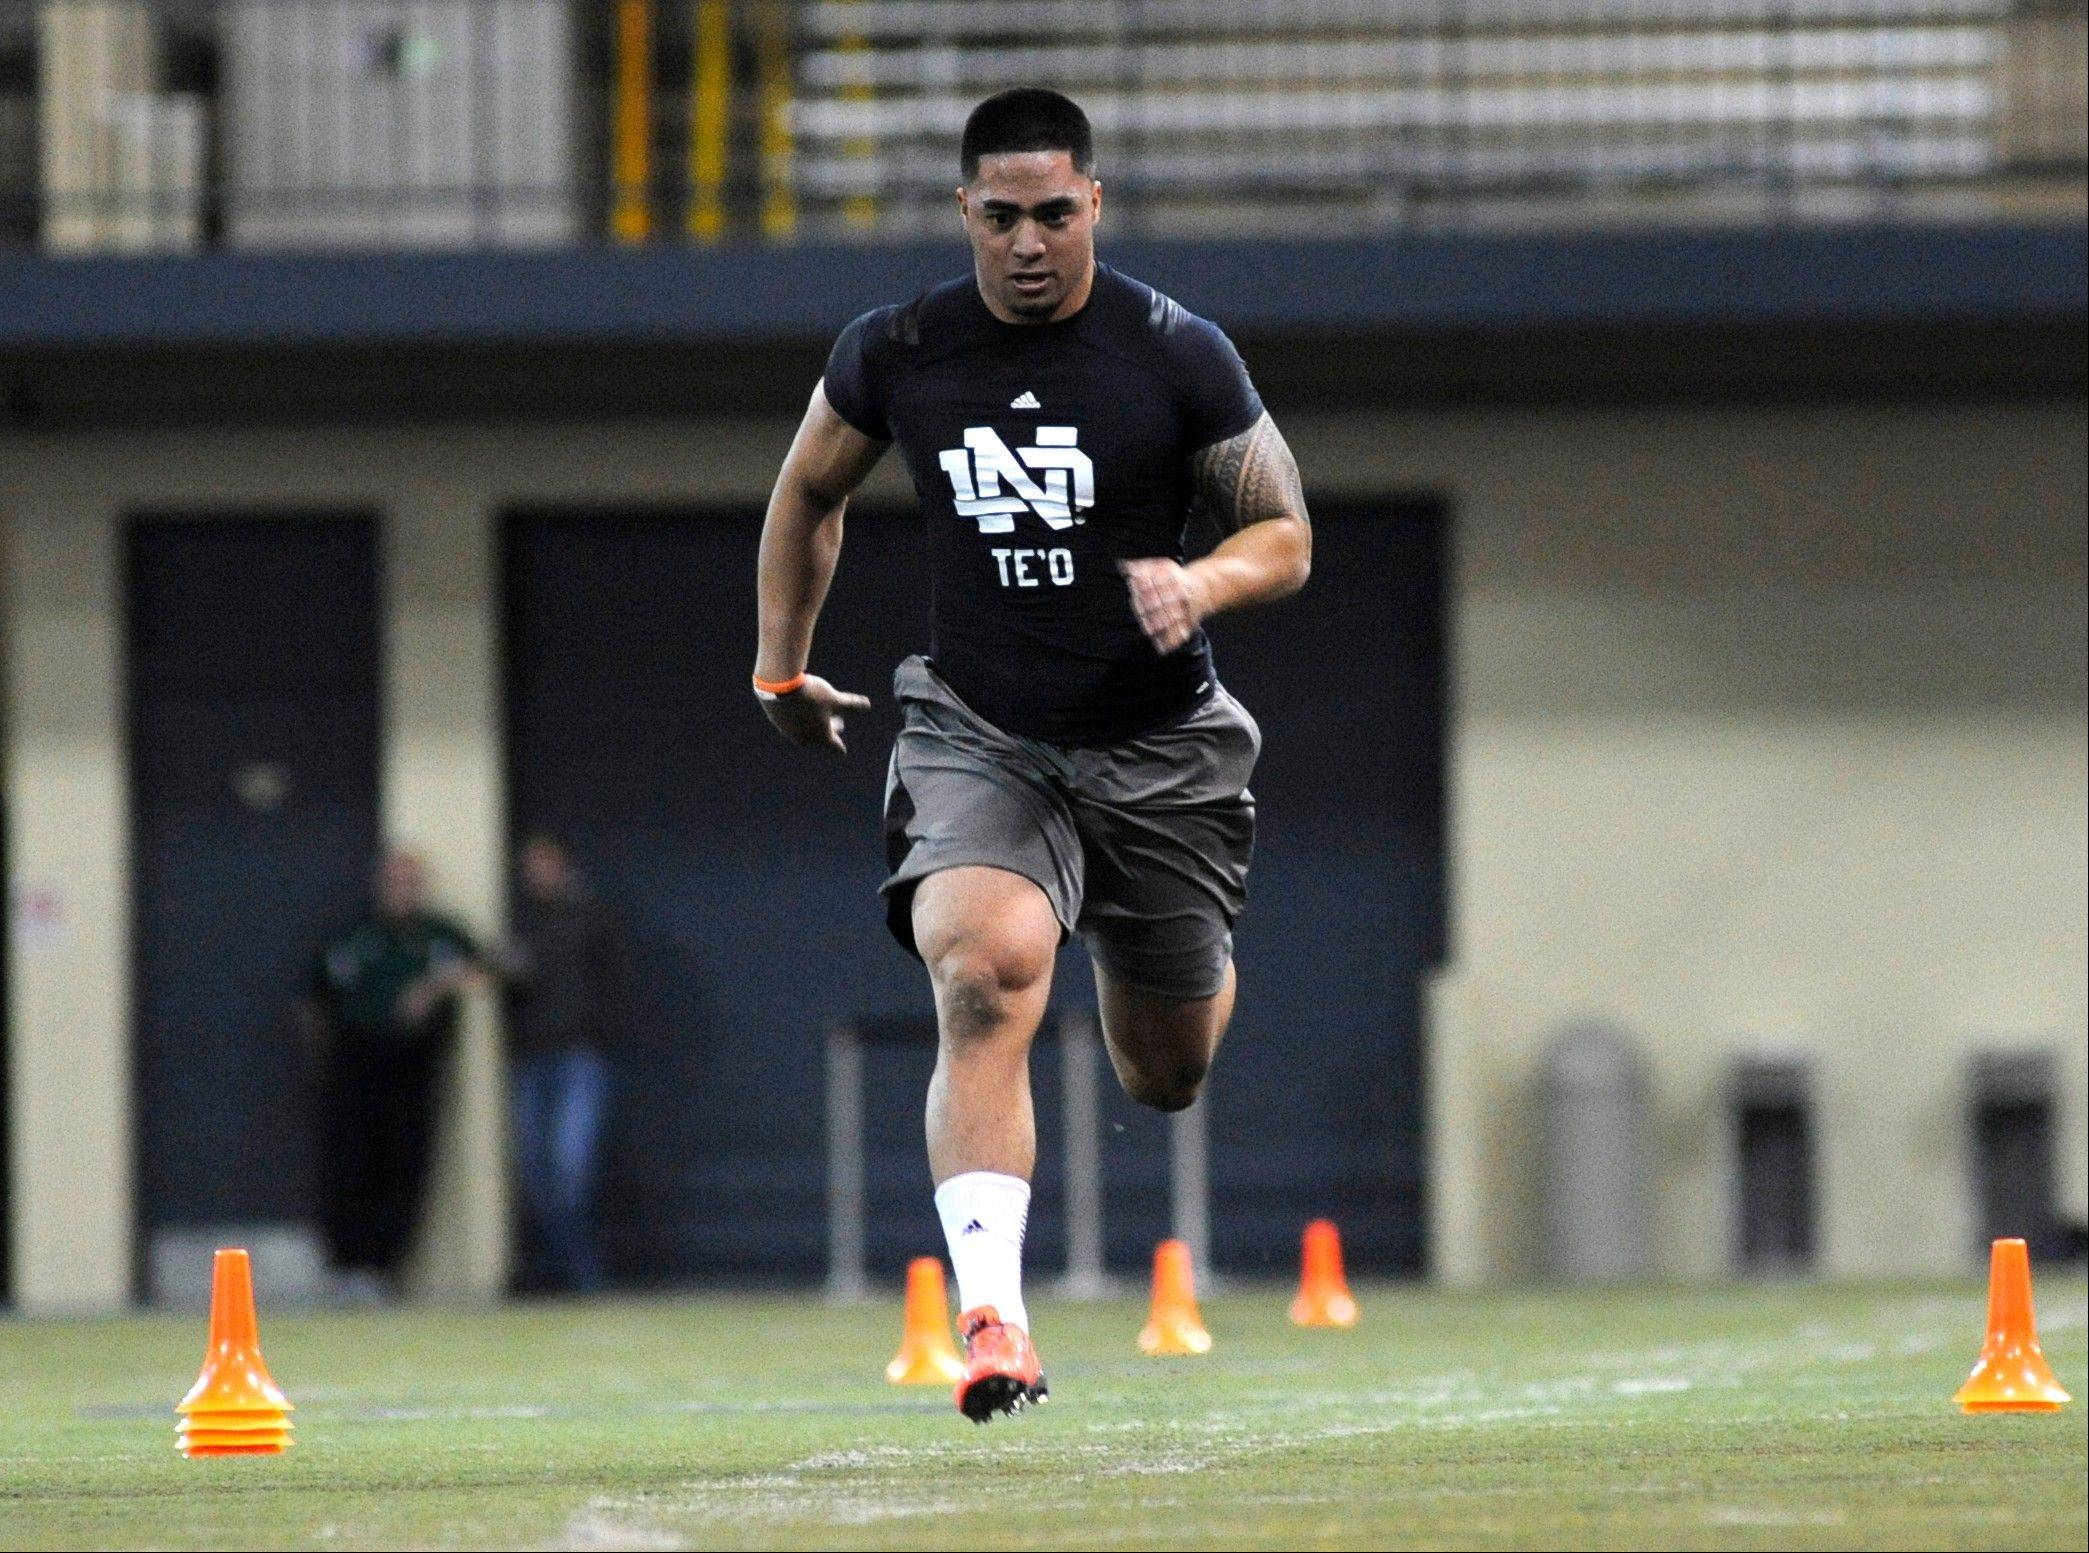 Linebacker Manti Te'o runs the 40-yard dash during Notre Dame's pro day for NFL scouts, Tuesday March 26, 2013 in South Bend, Ind.